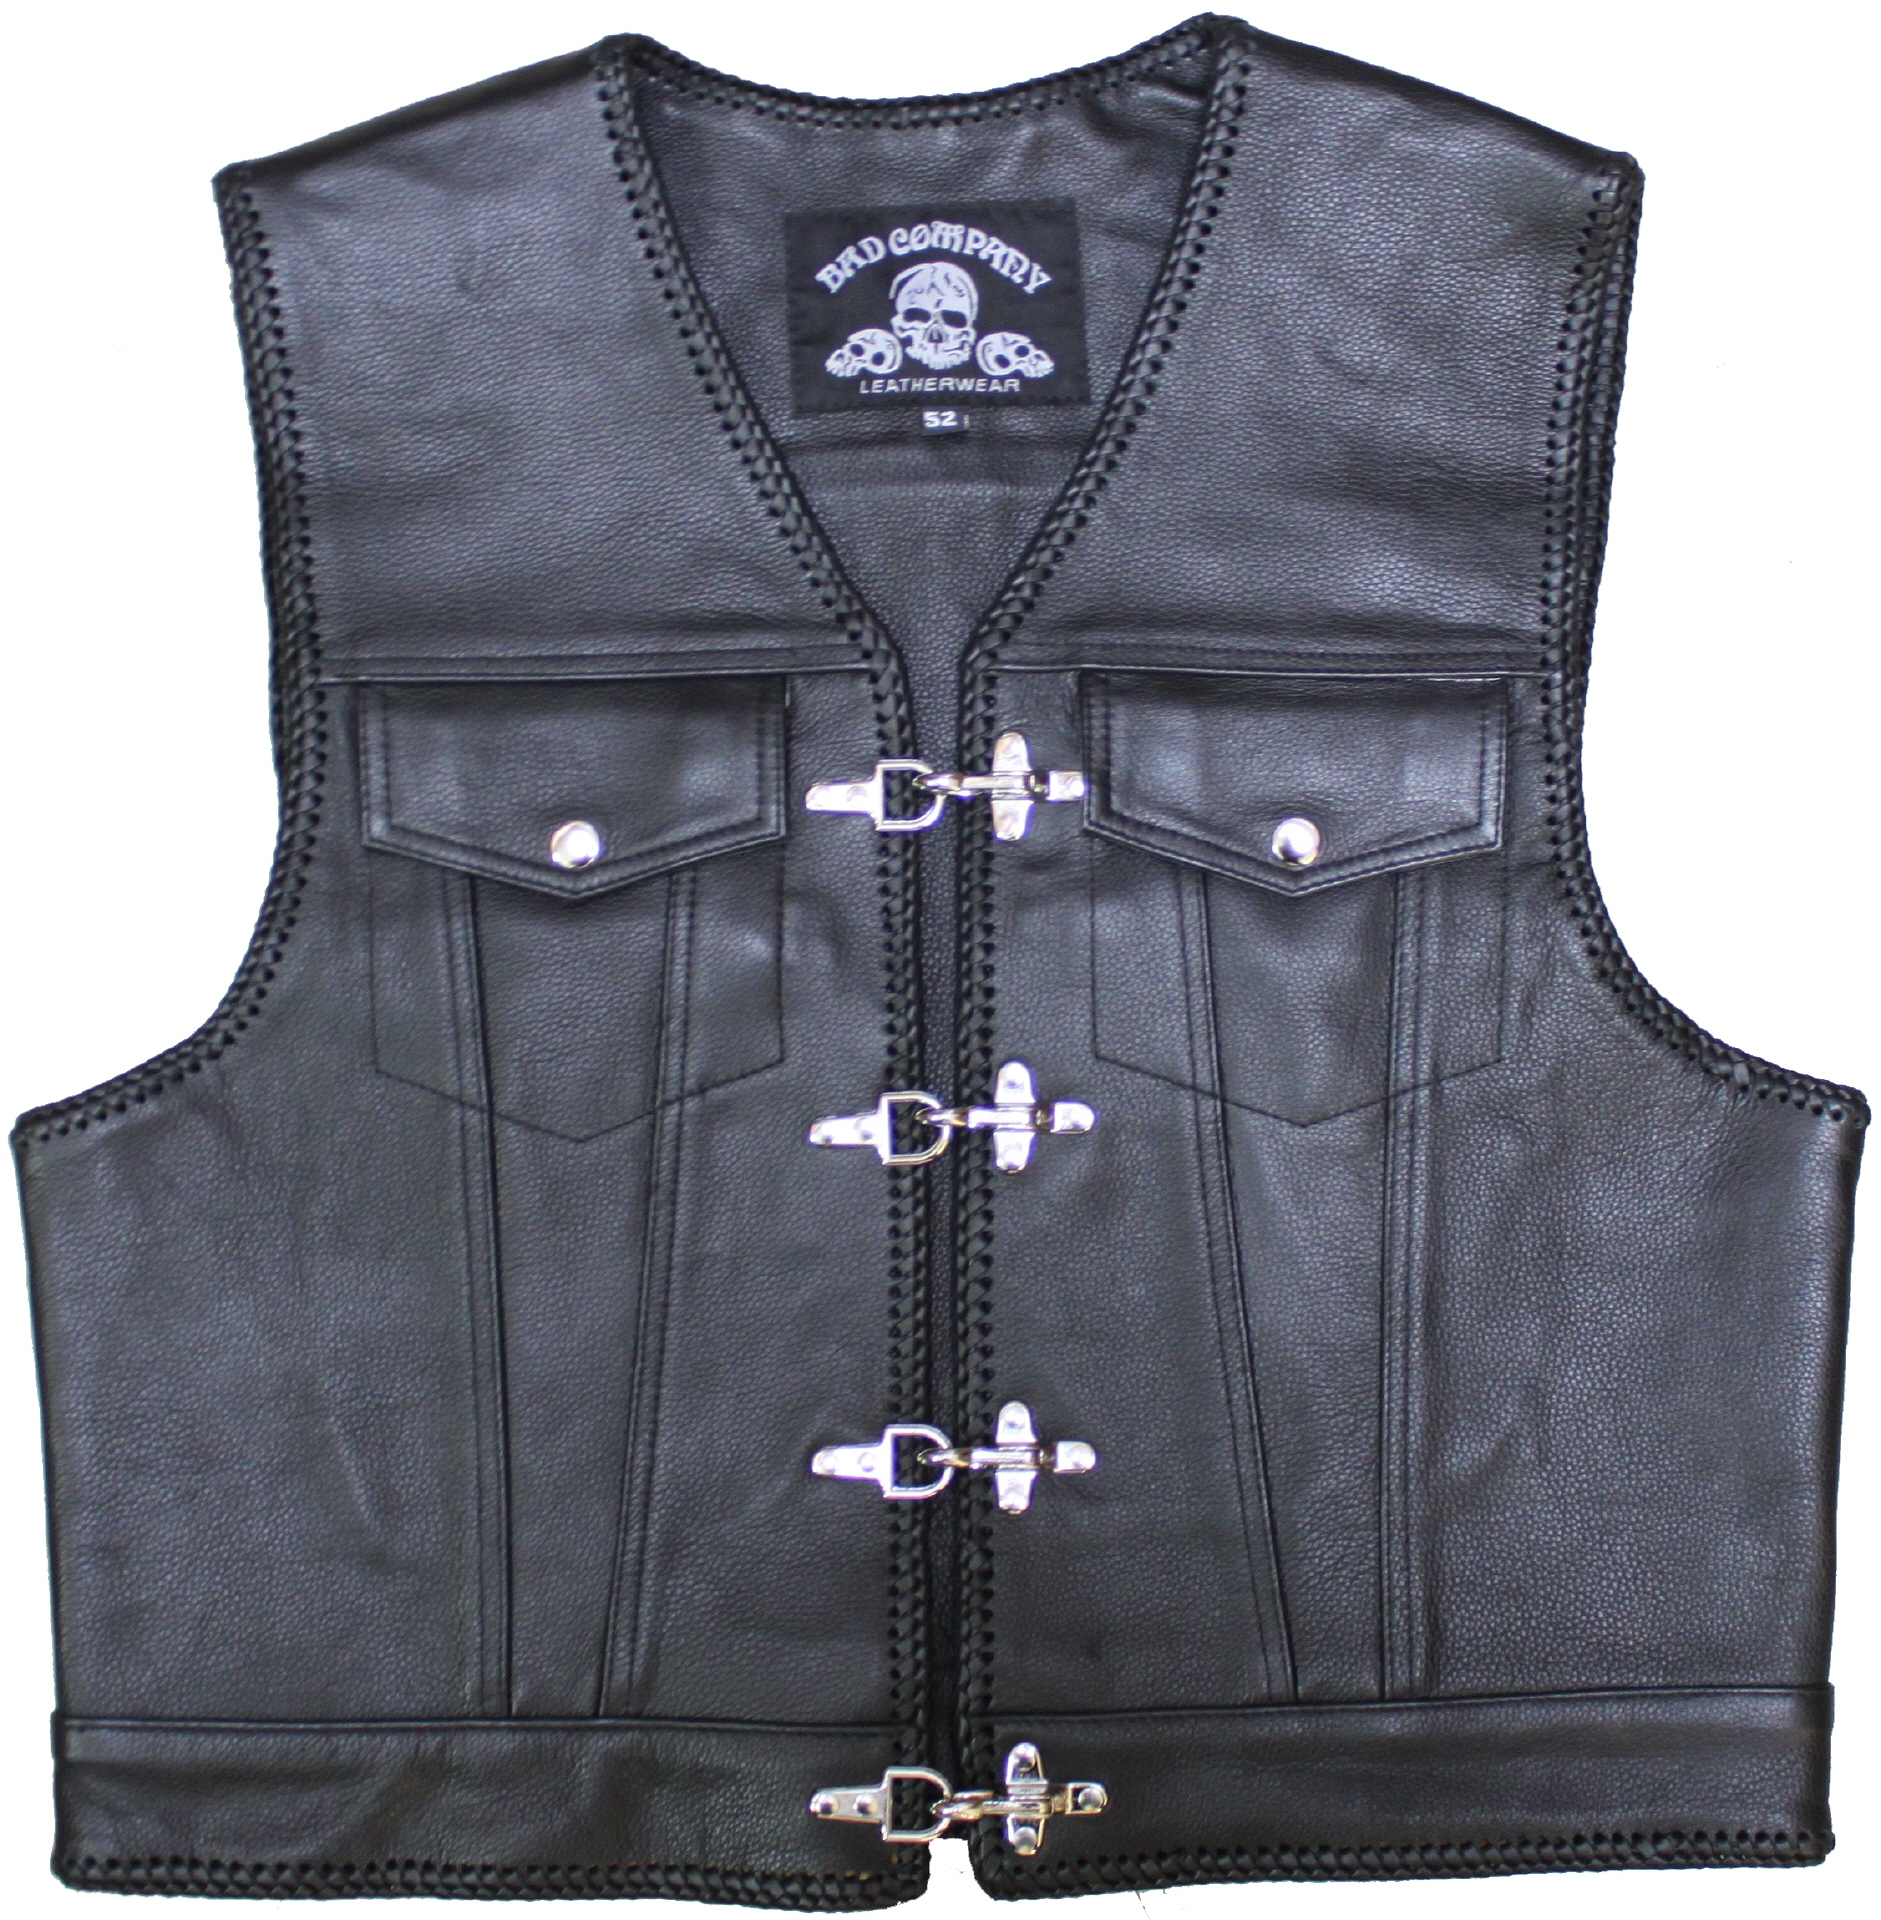 bad company mod paul in the jeans cut kutte leather vest. Black Bedroom Furniture Sets. Home Design Ideas